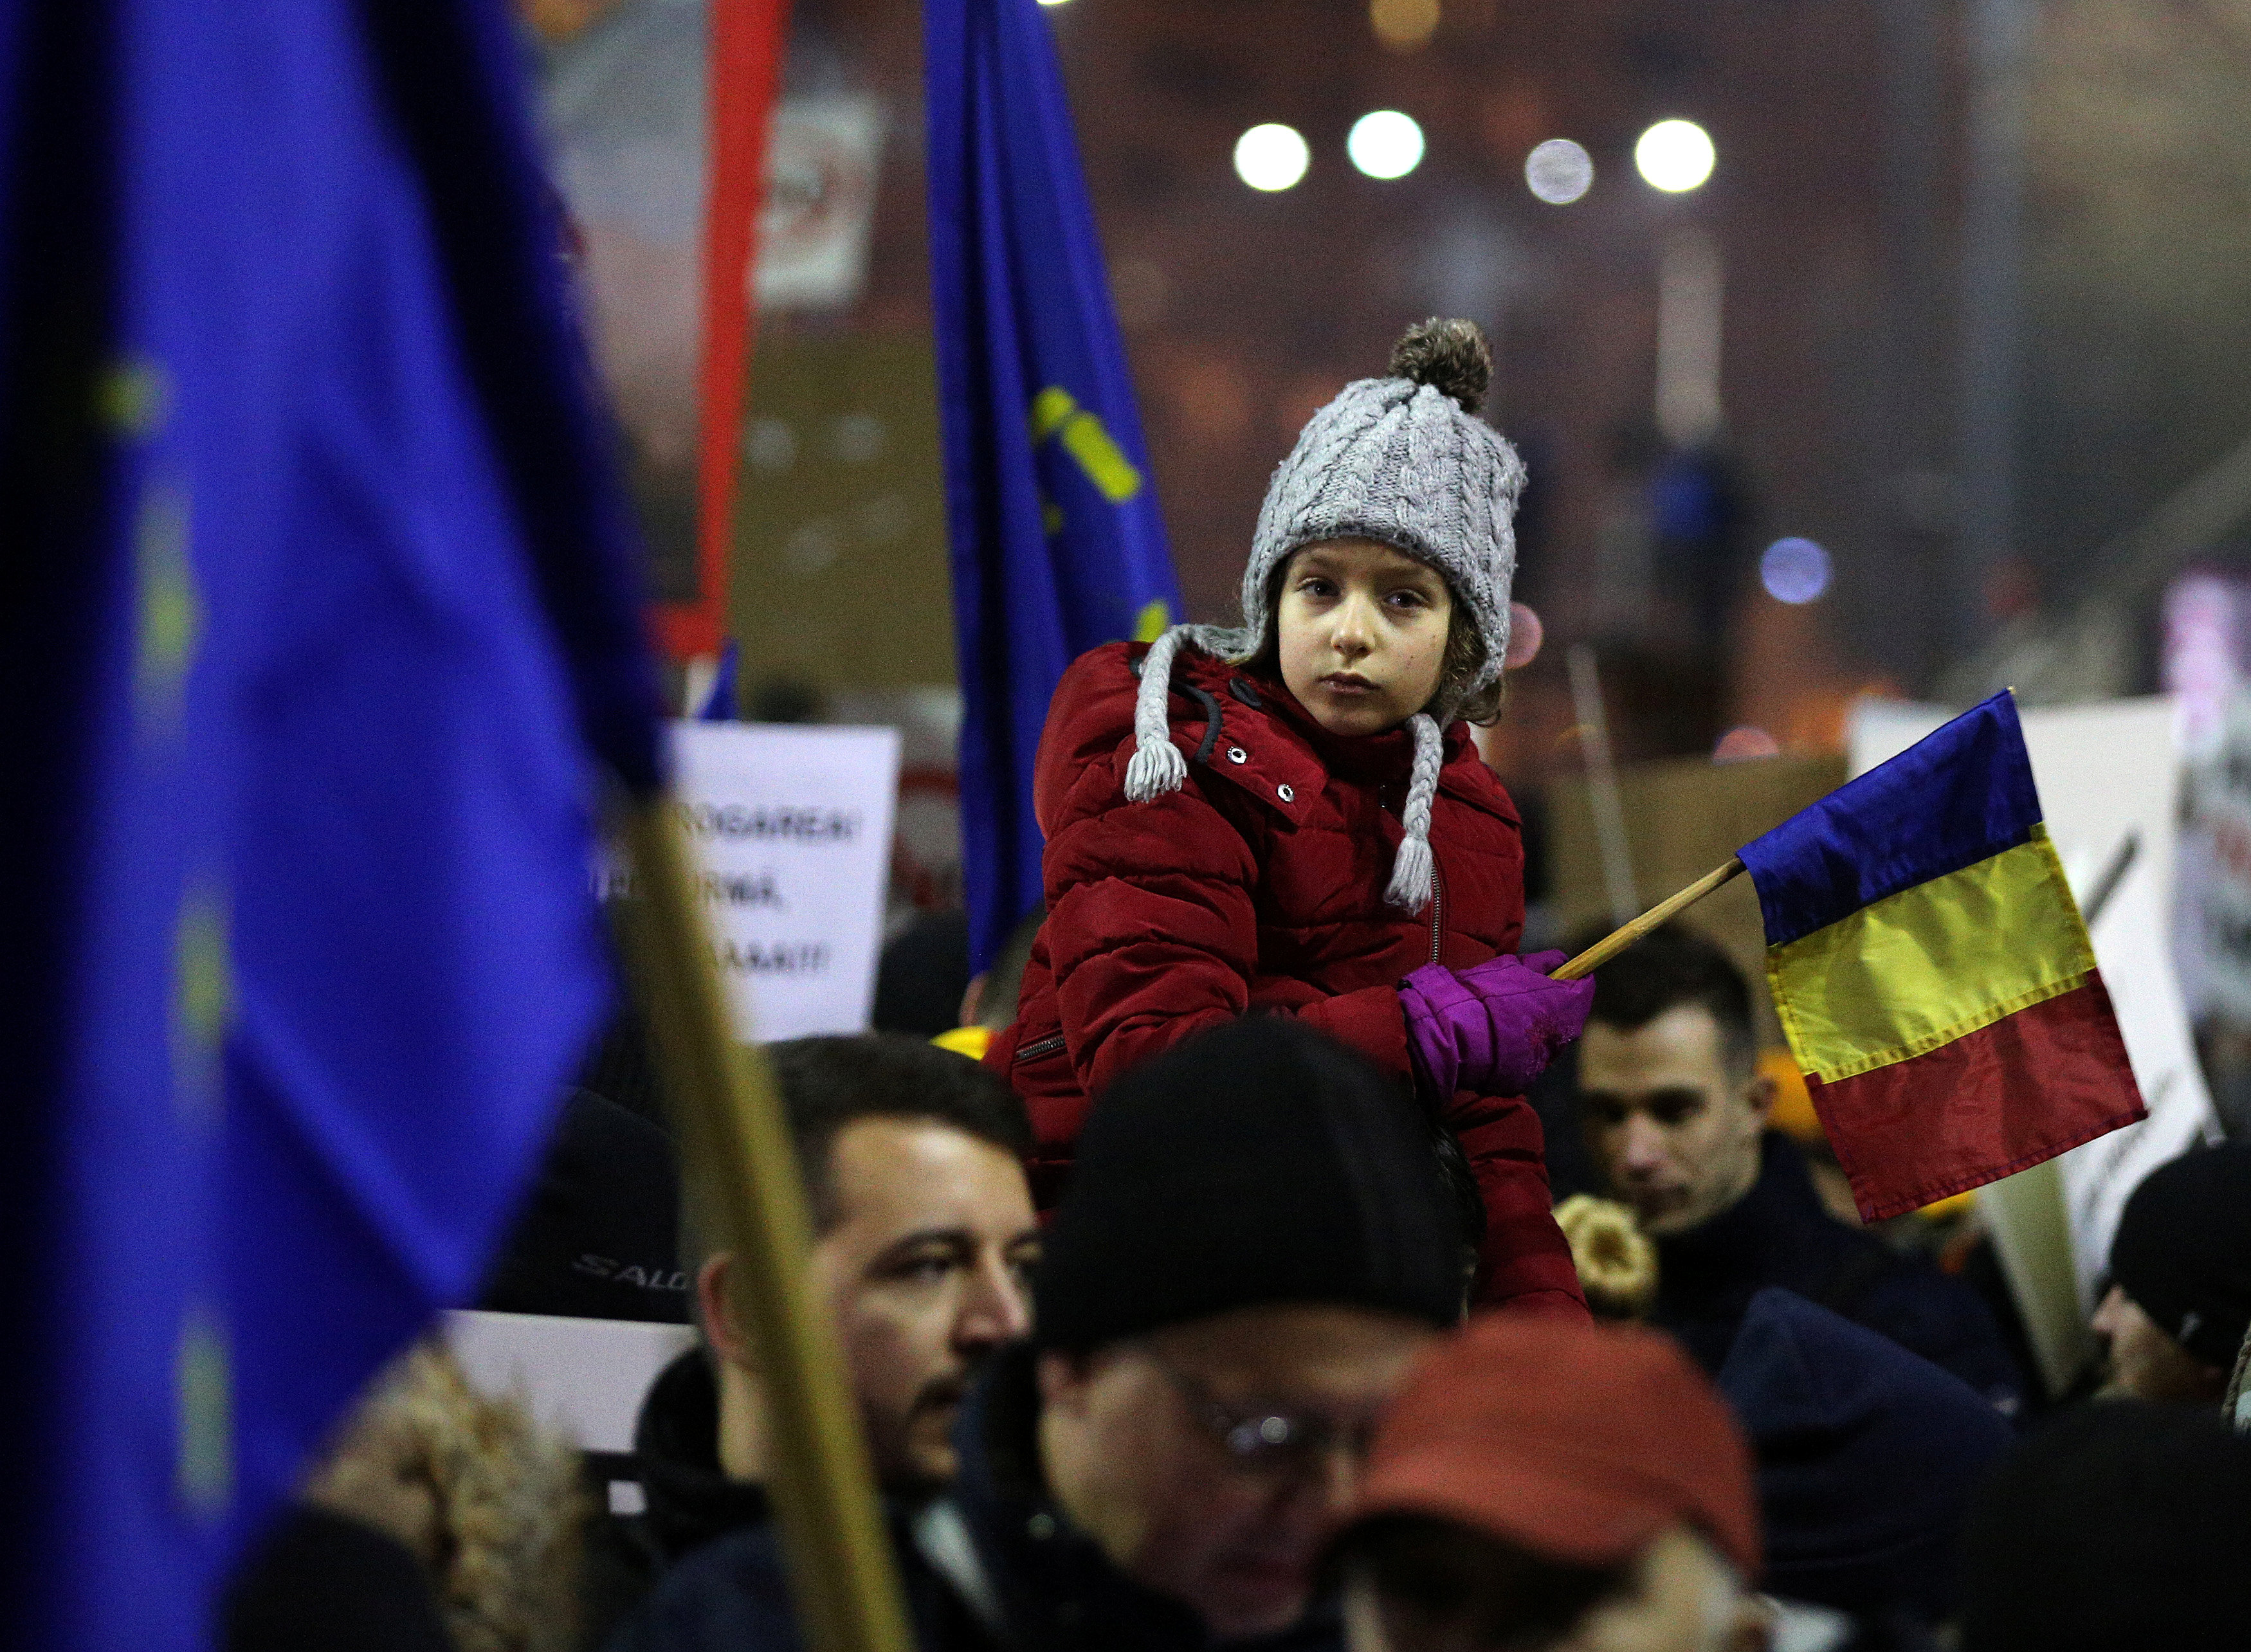 Graft decree may be scrapped, says Romanian ruling party chief